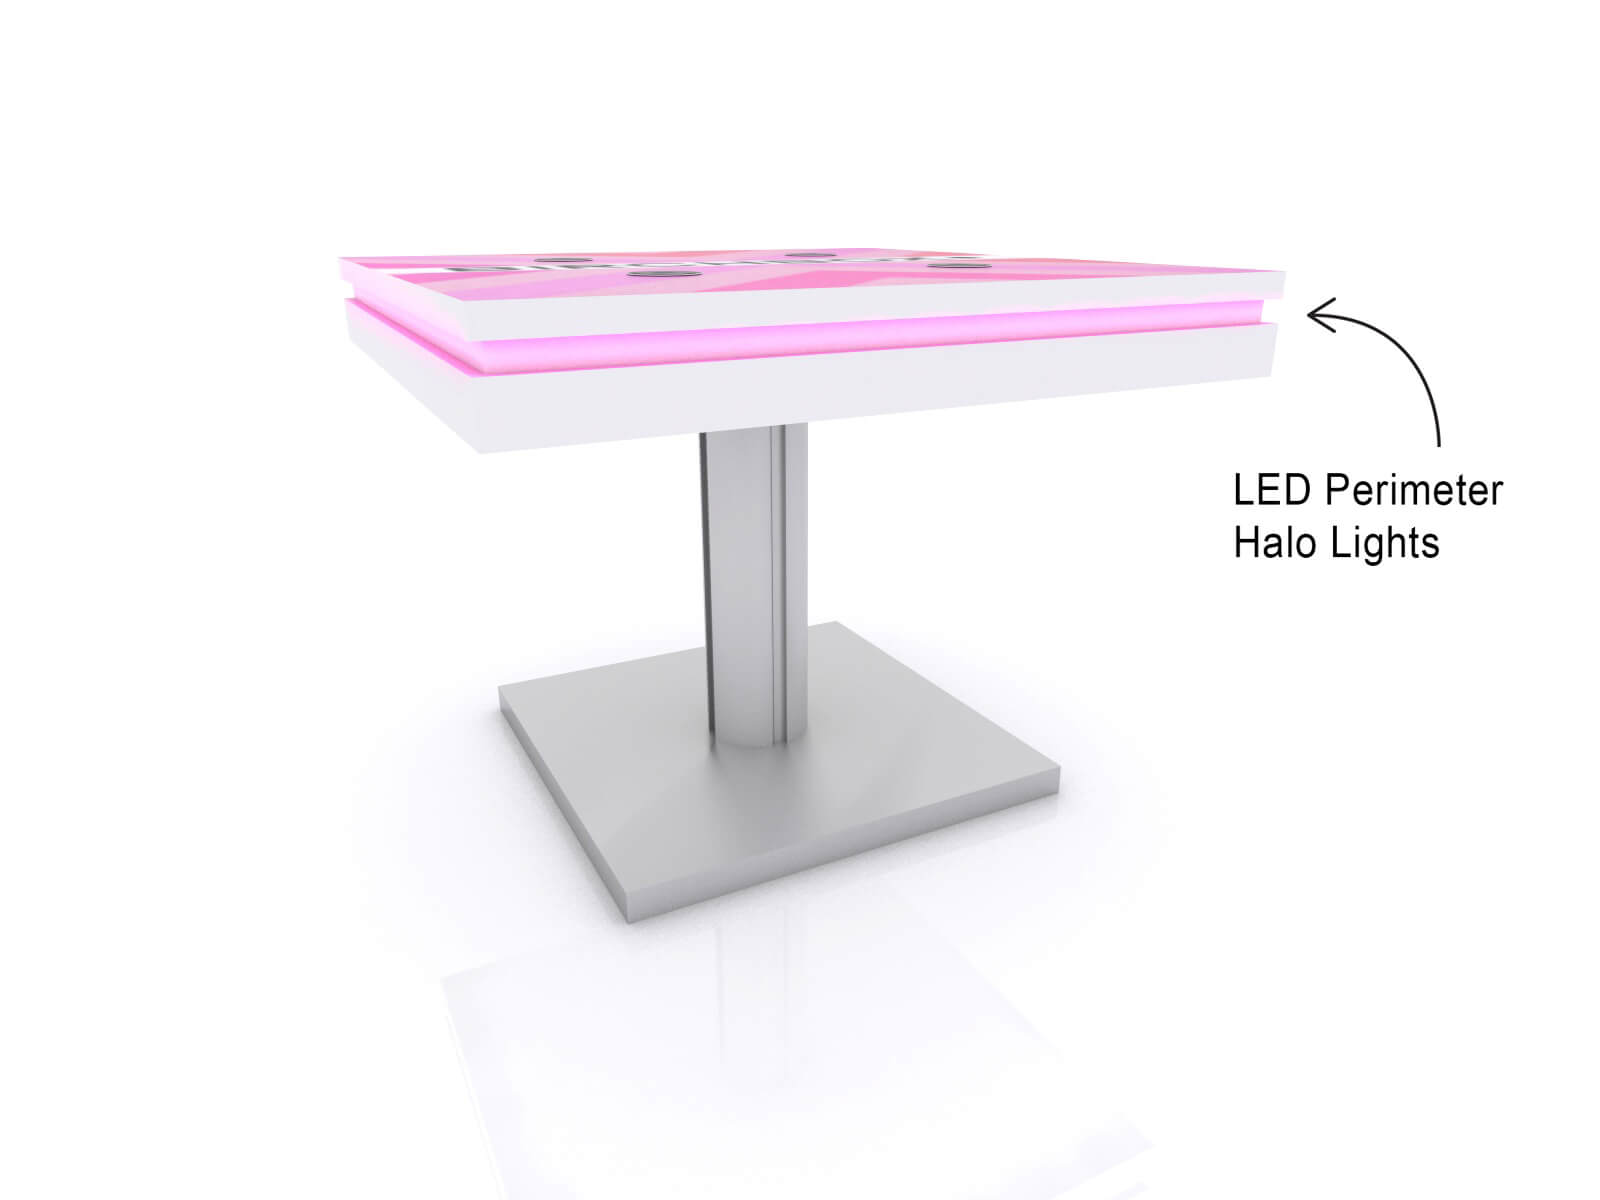 MOD-1456 Trade Show Wireless Charging Station - image 4